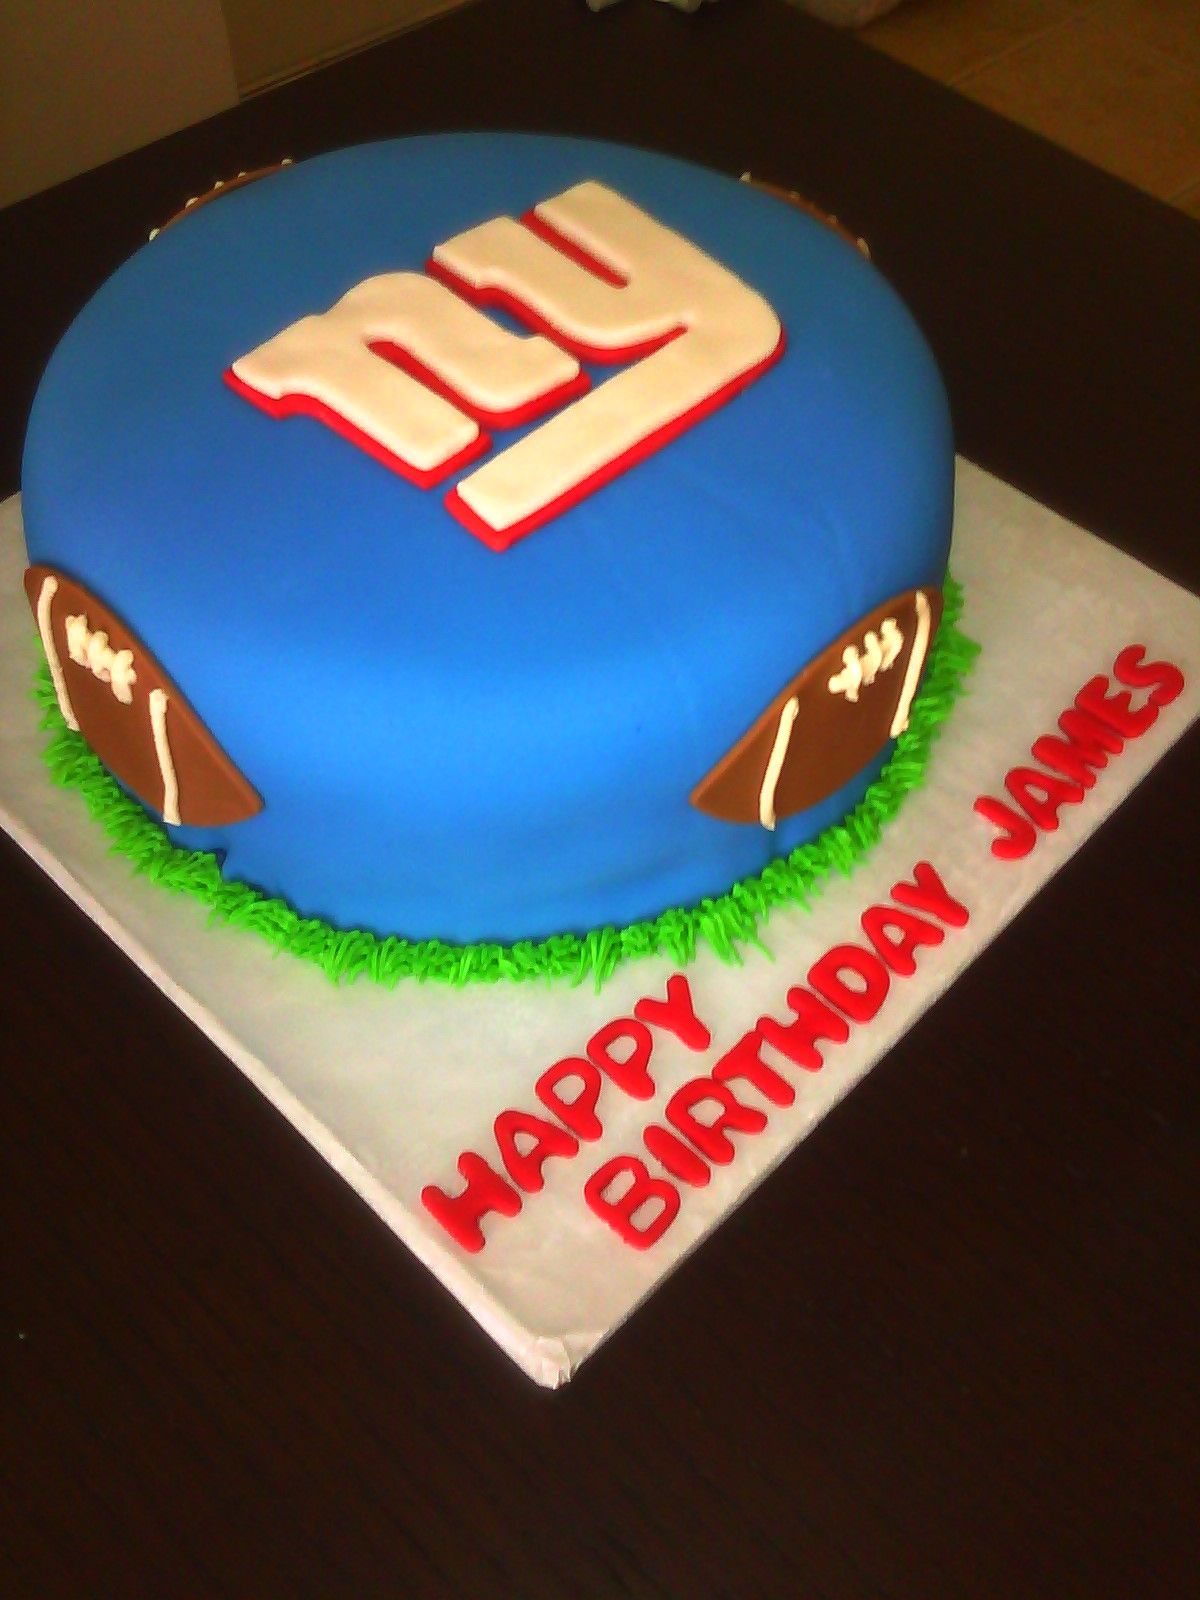 I Know Who Will Have This Cake For His Bday Ny Giants Baby For